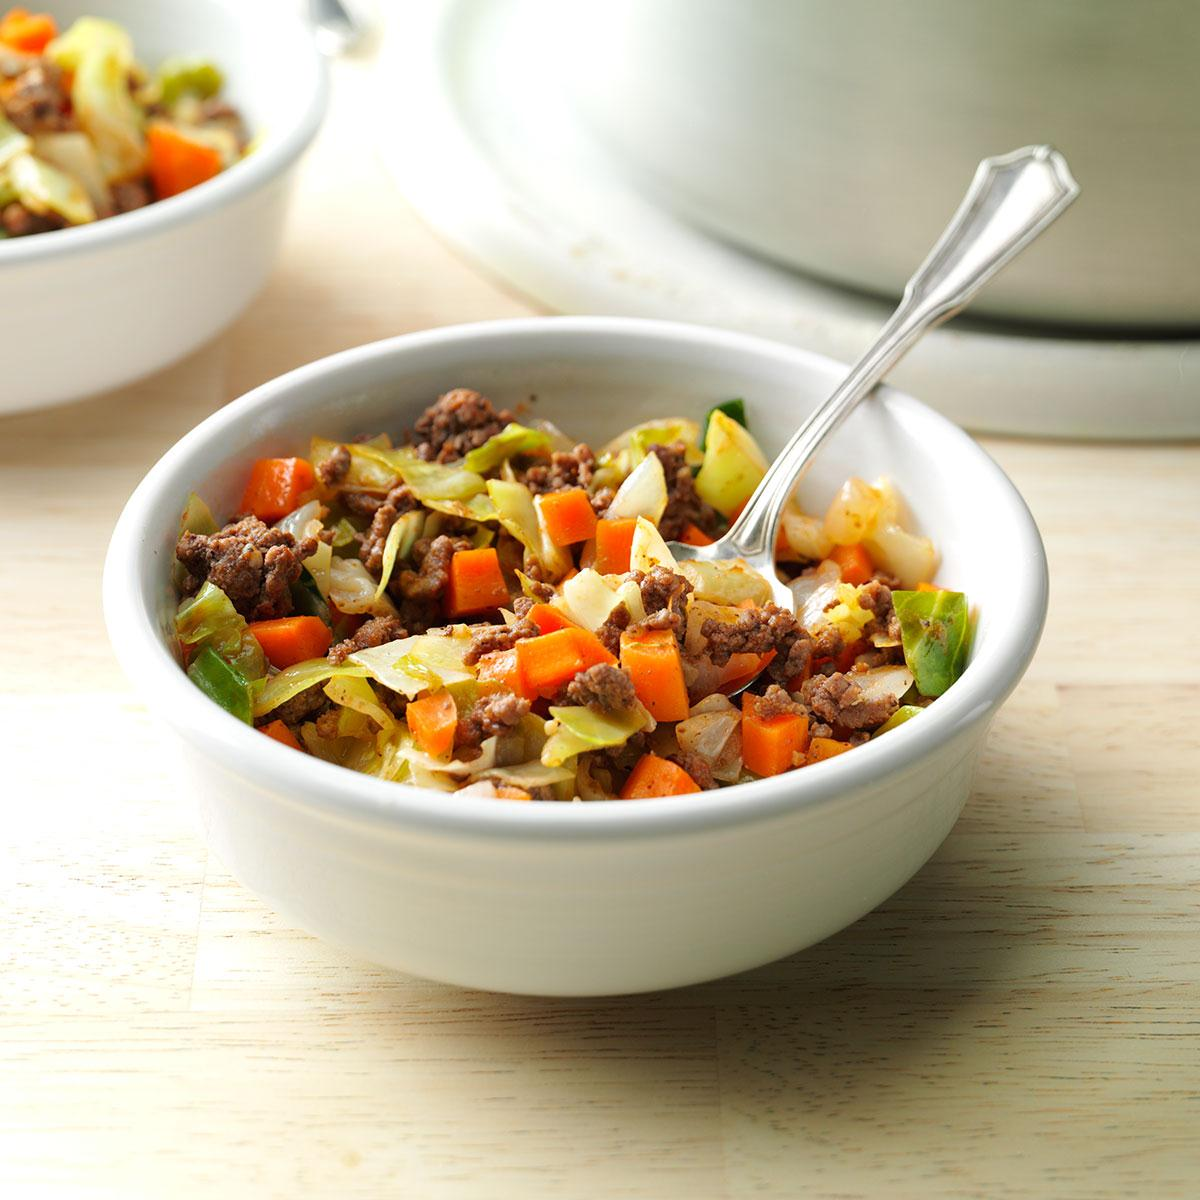 Saucy Beef Cabbage Supper Recipe